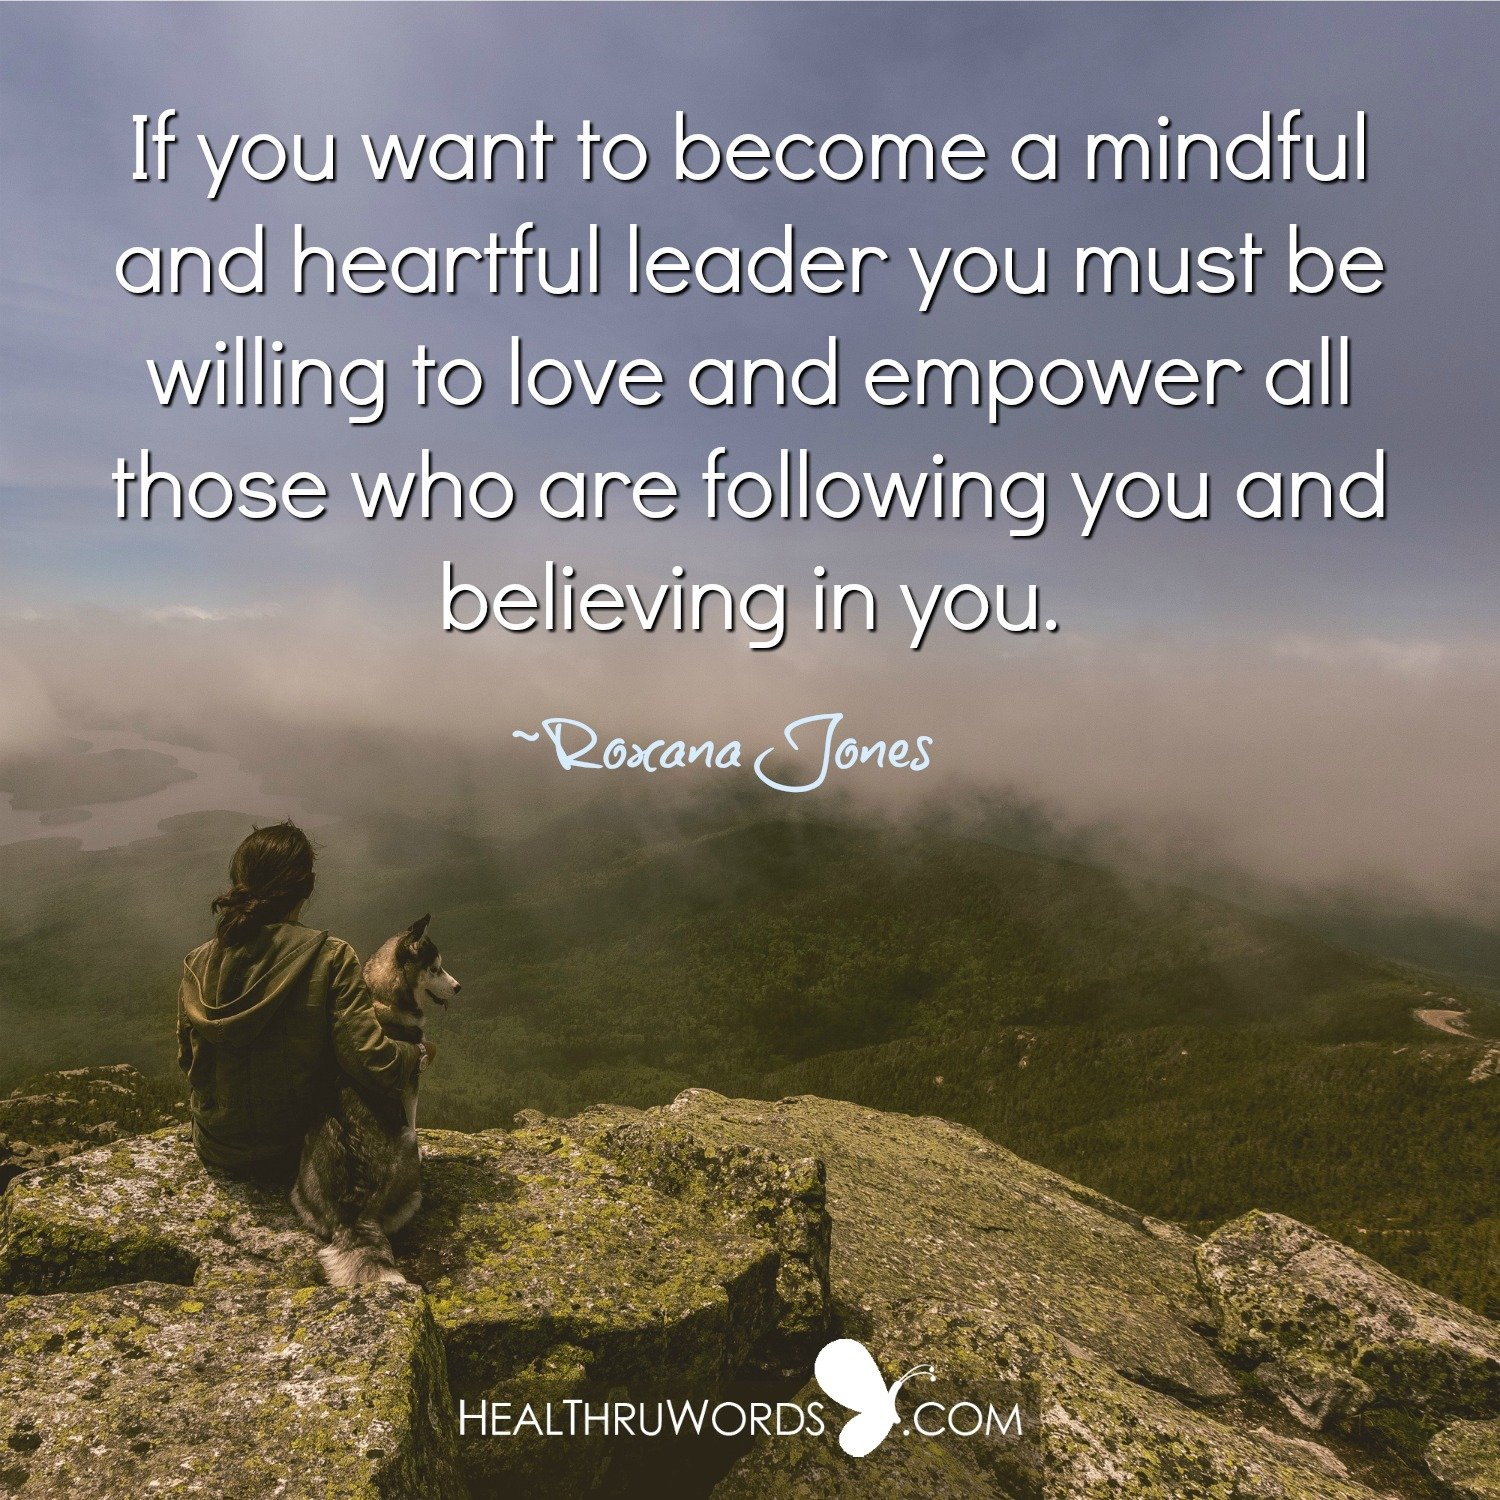 Inspirational Image: A Mindful and Heartful Leader